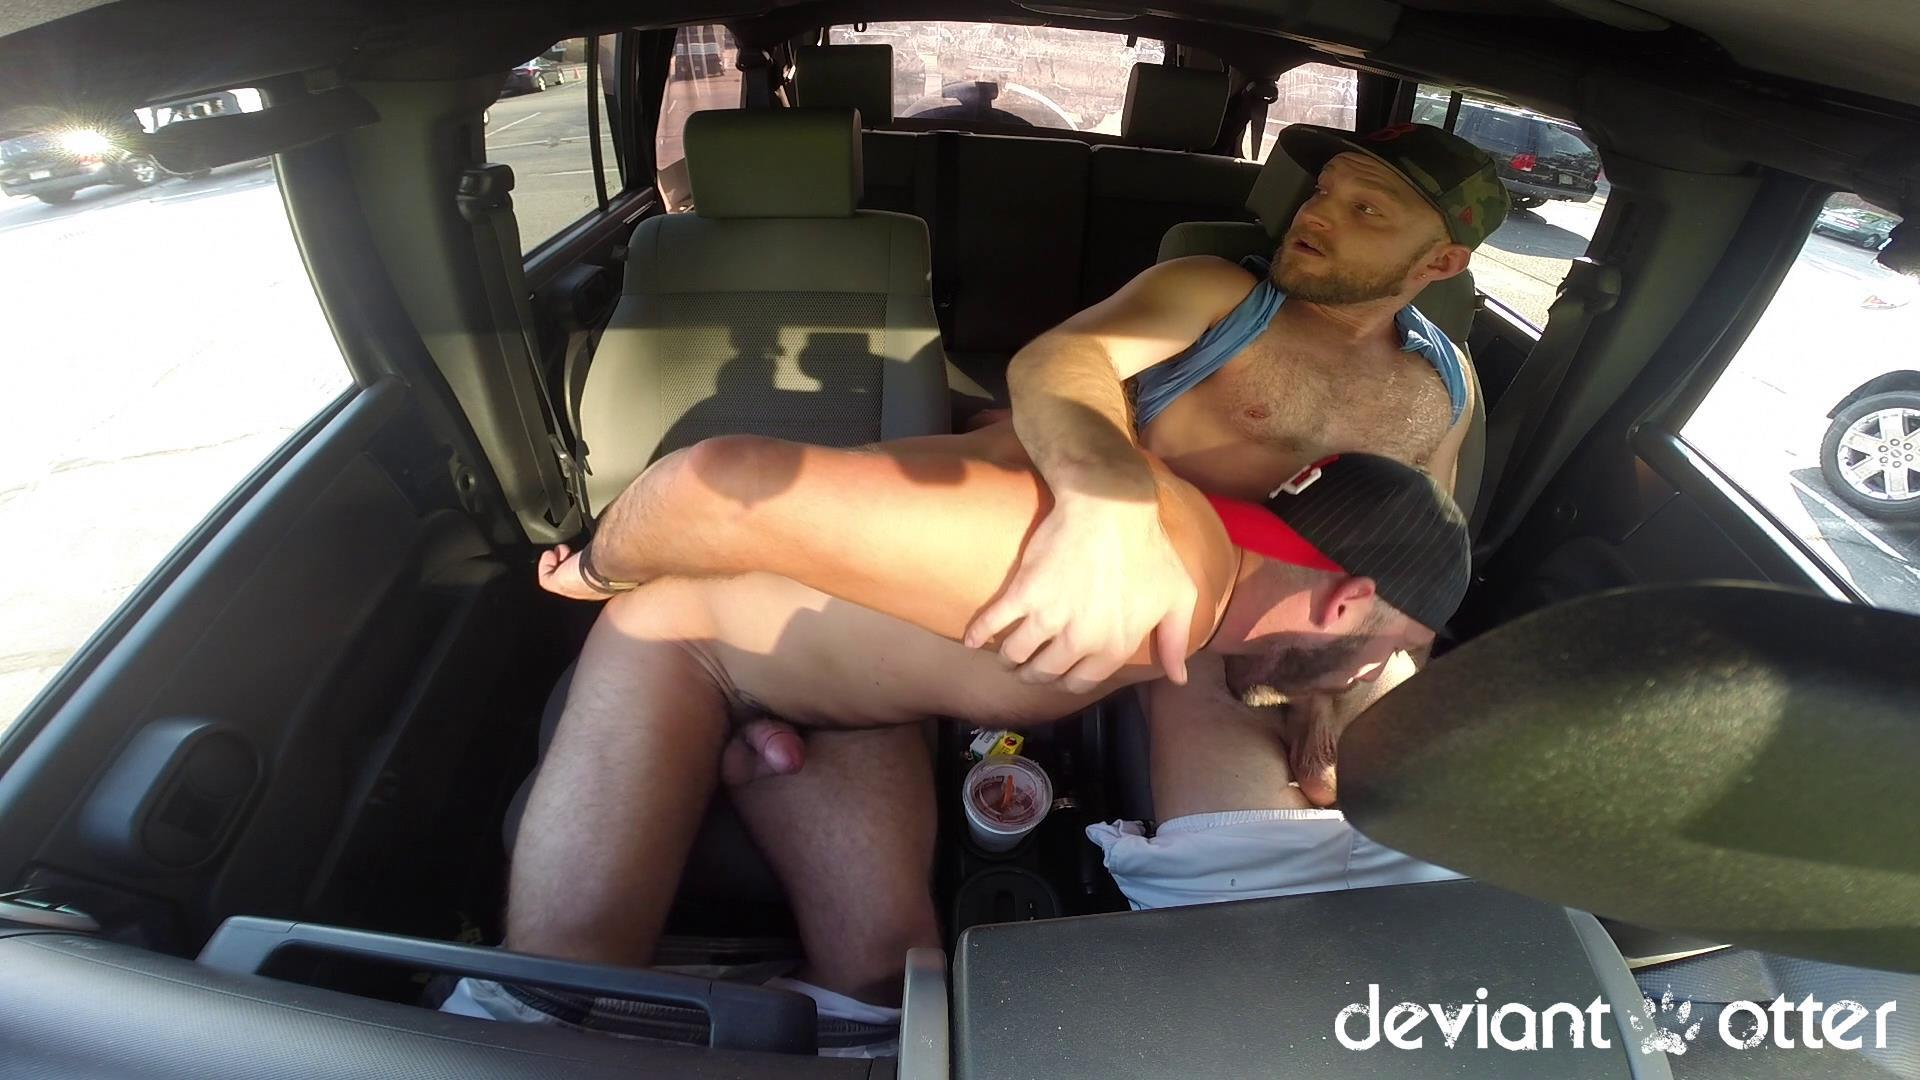 Deviant-Otter-Xavier-Sucking-Cock-In-Public-Hairy-Guys-Amateur-Gay-Porn-14 Masculine Hairy Guys Sucking Each Other's Cock In A Parking Lot